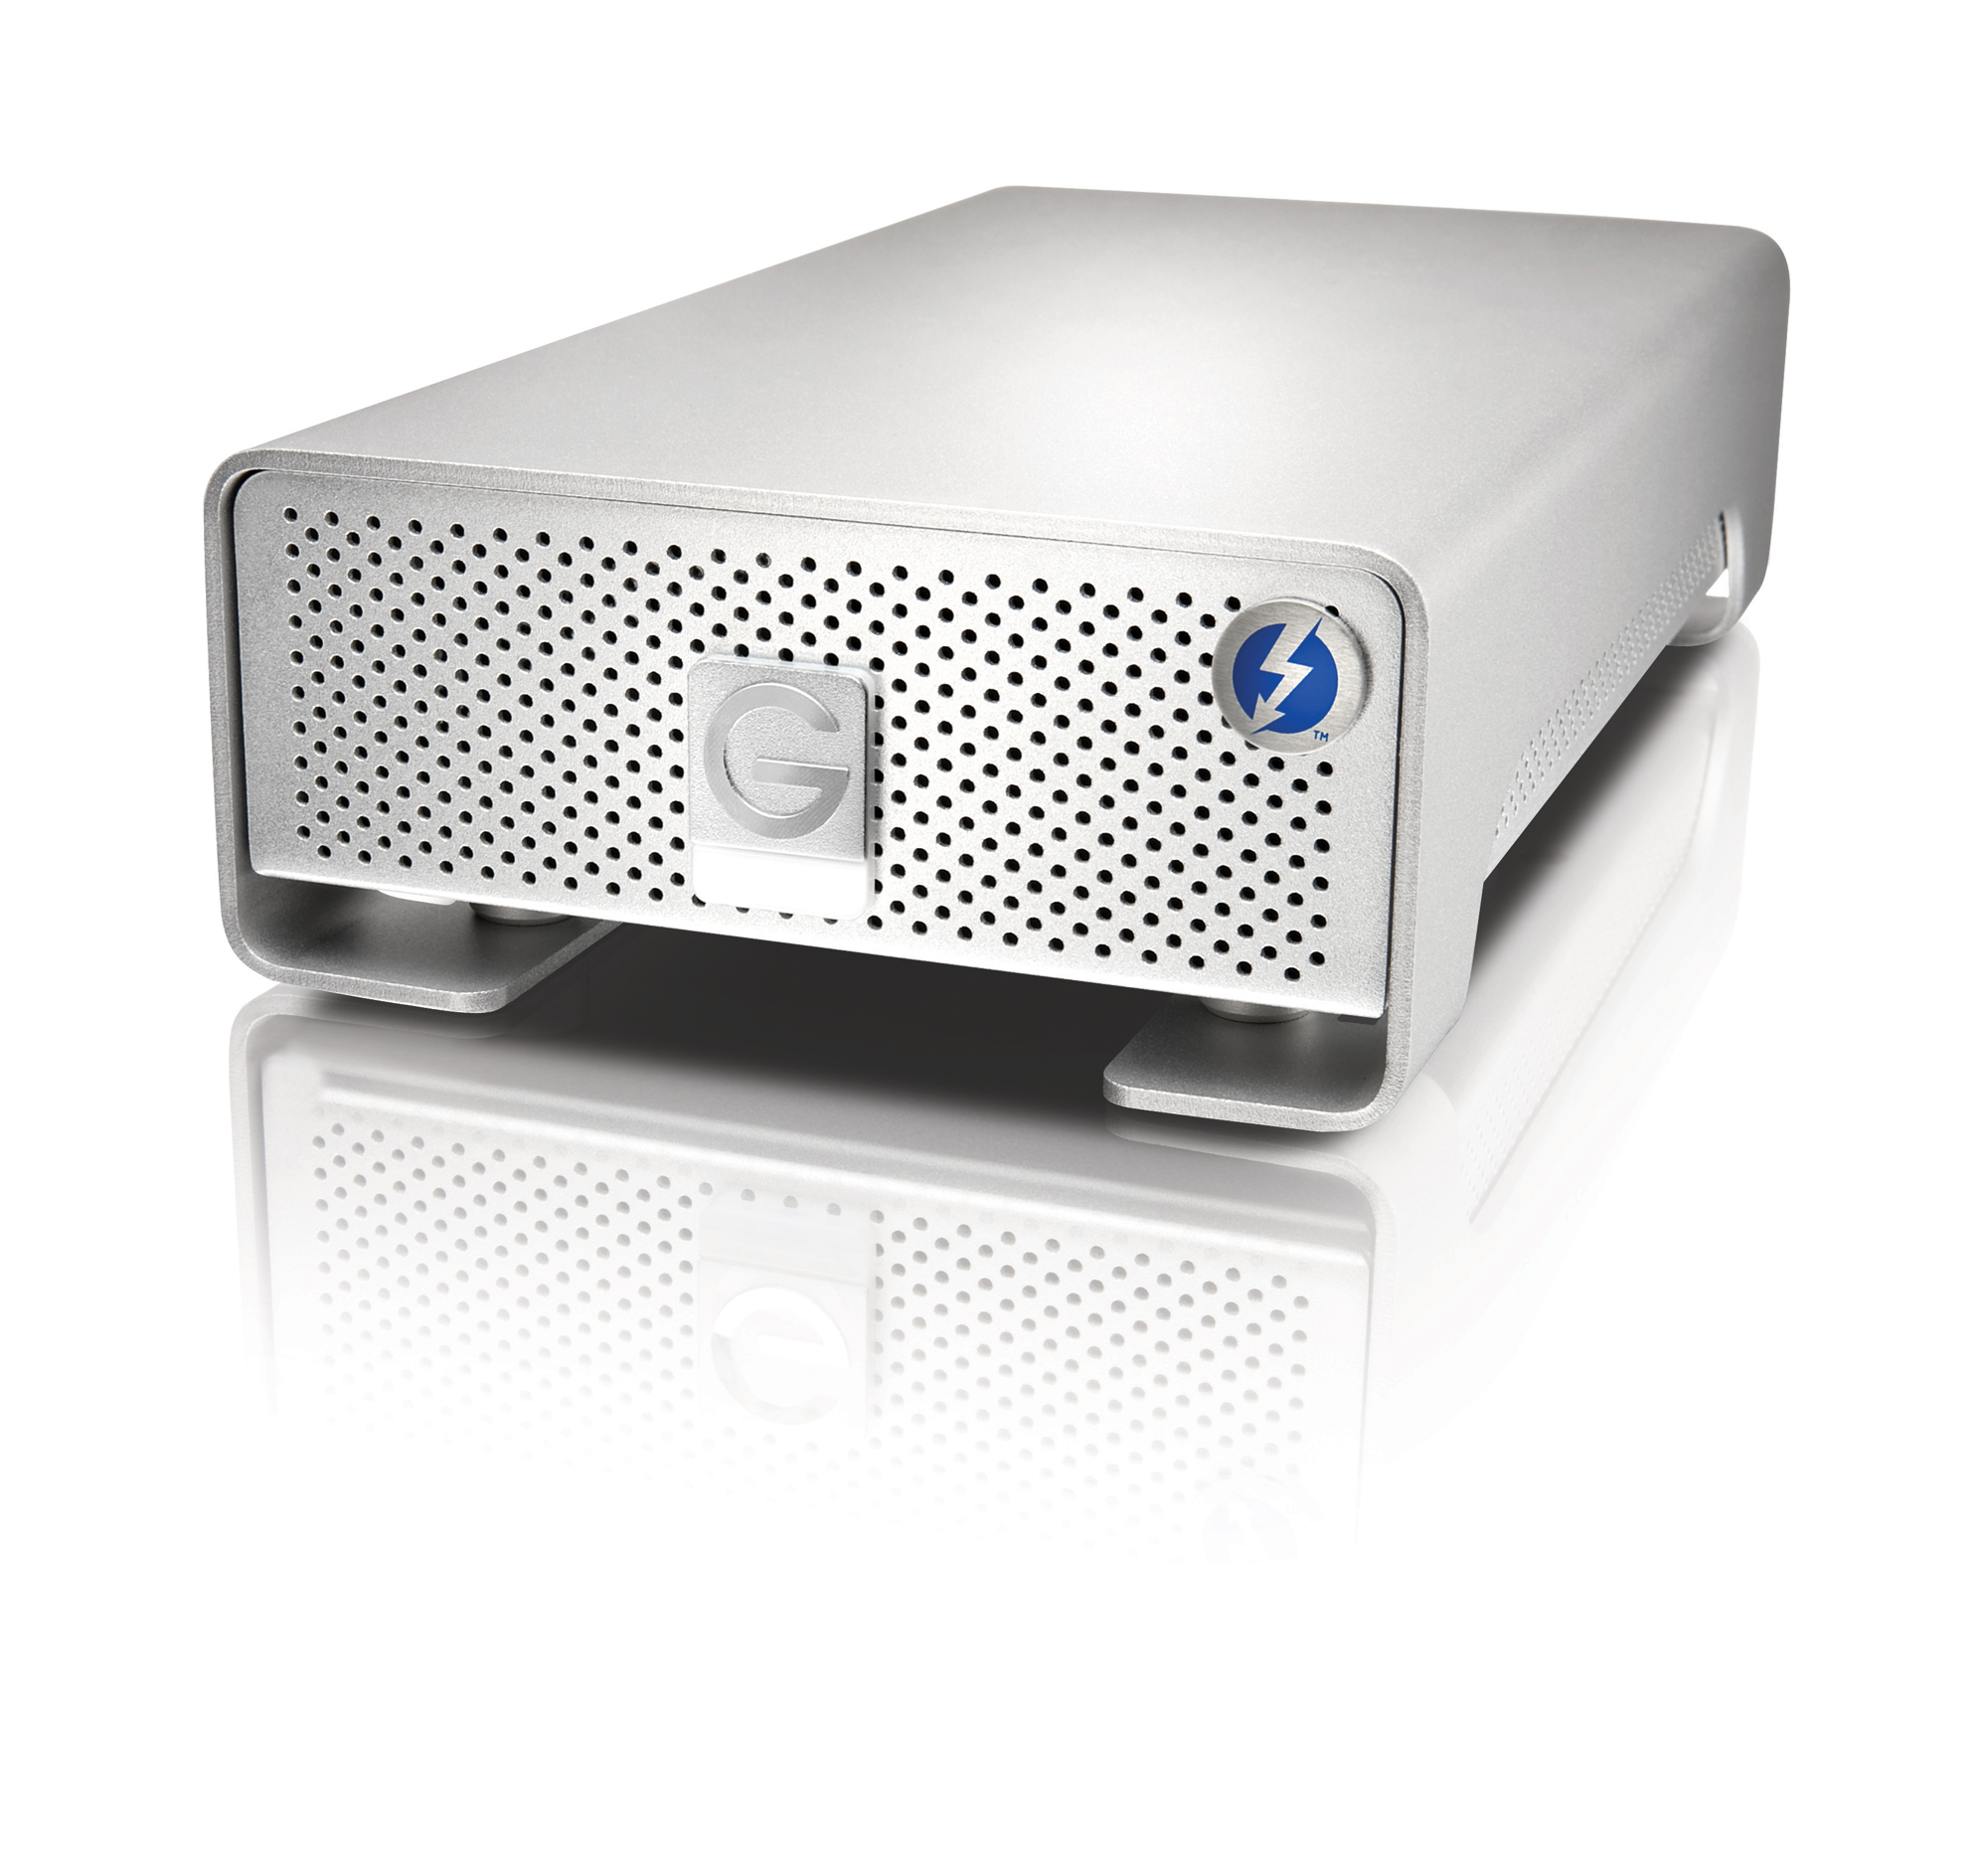 G-DRIVE with Thunderbolt 3TB